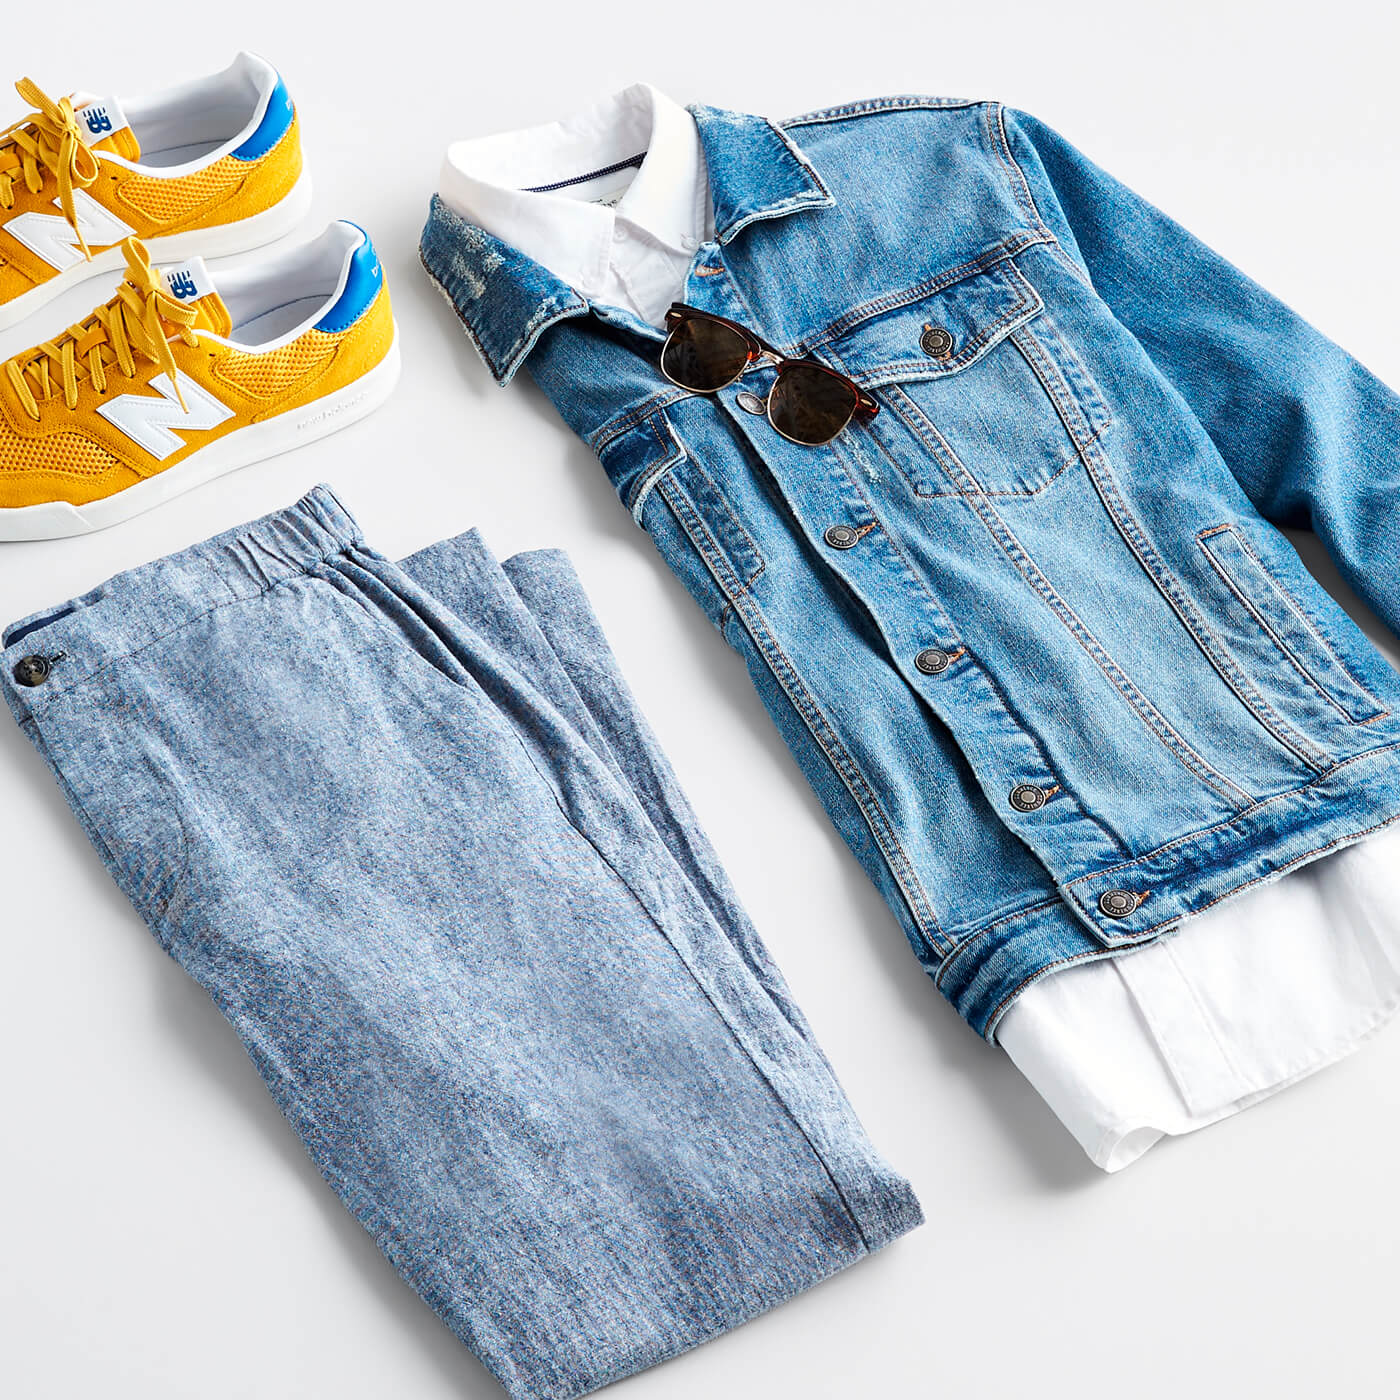 white oxford shirt with jean jacket